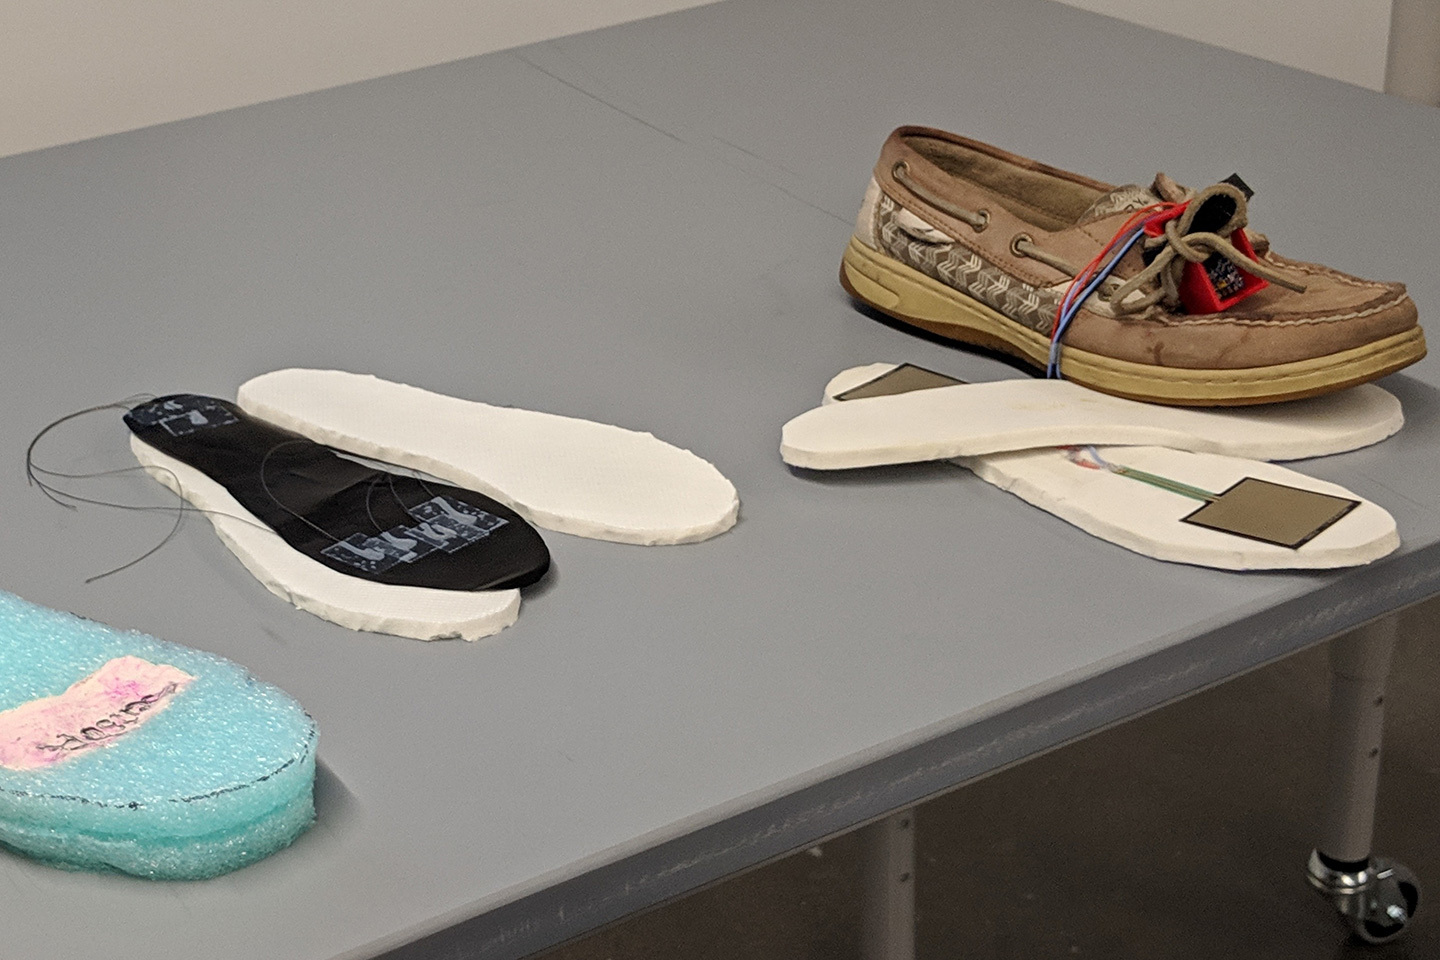 A prototype shoe insole to help detect diabetic neuropathy.